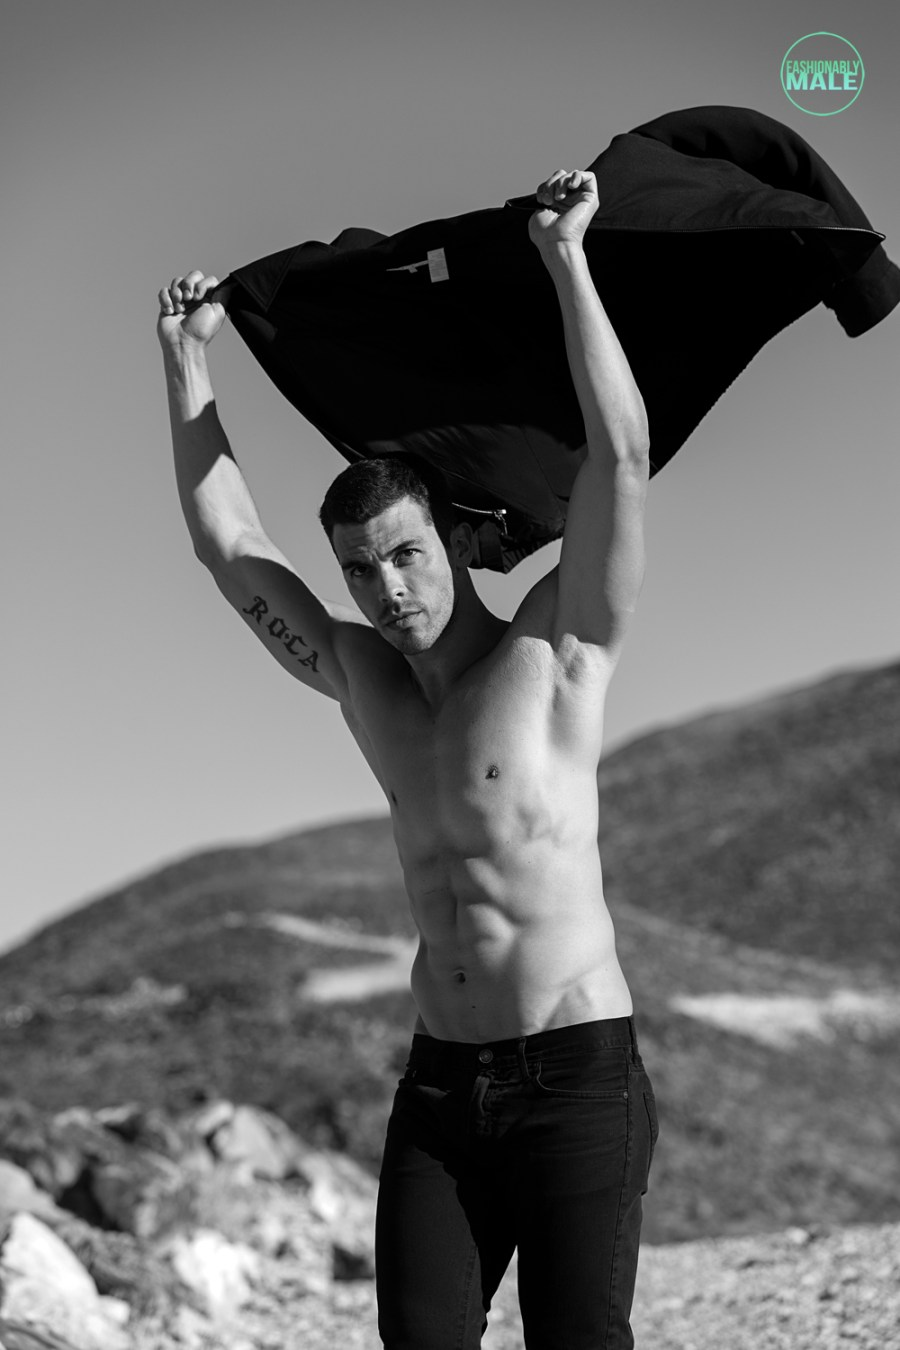 Augusto and Louis by Ivan Avila for Fashionably Male13